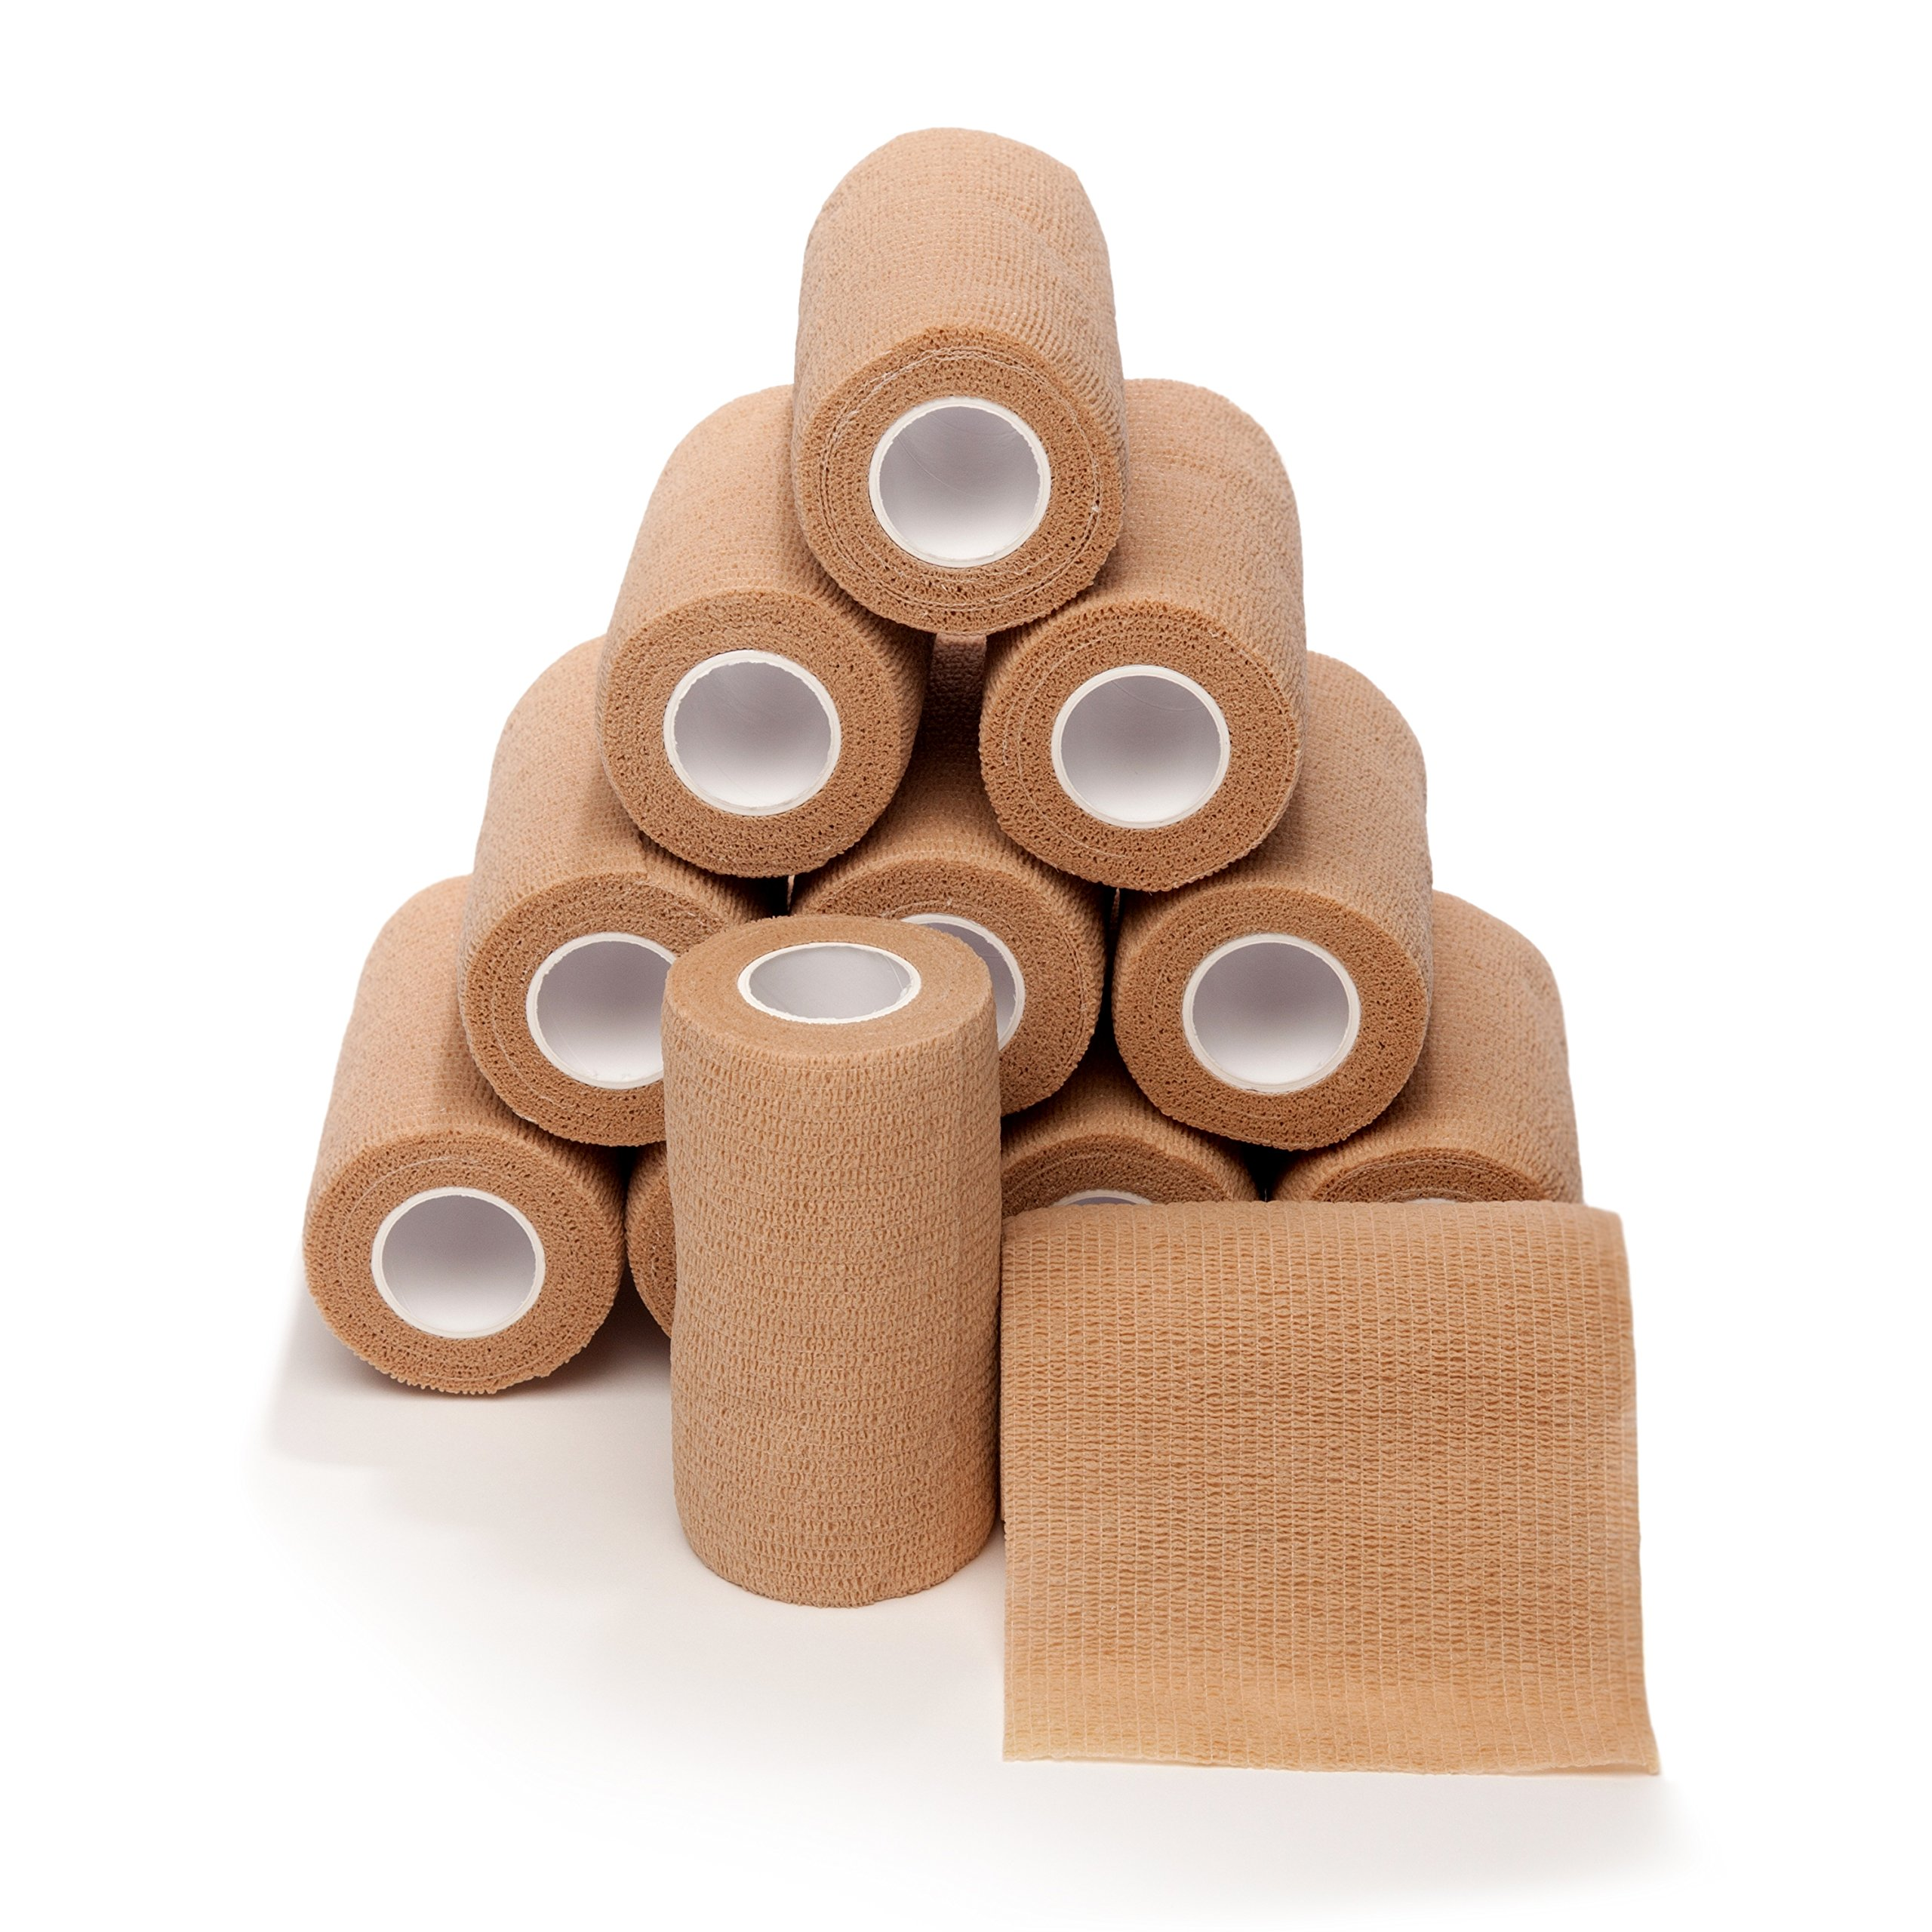 12-Pack, 4'' Wide x 5 Yards, Self-Adherent Cohesive Tape, Strong Sports Tape for Wrist, Ankle Sprains & Swelling, Self-Adhesive Bandage Rolls, Vet Tape Wrap, Brown Color, by California Basics